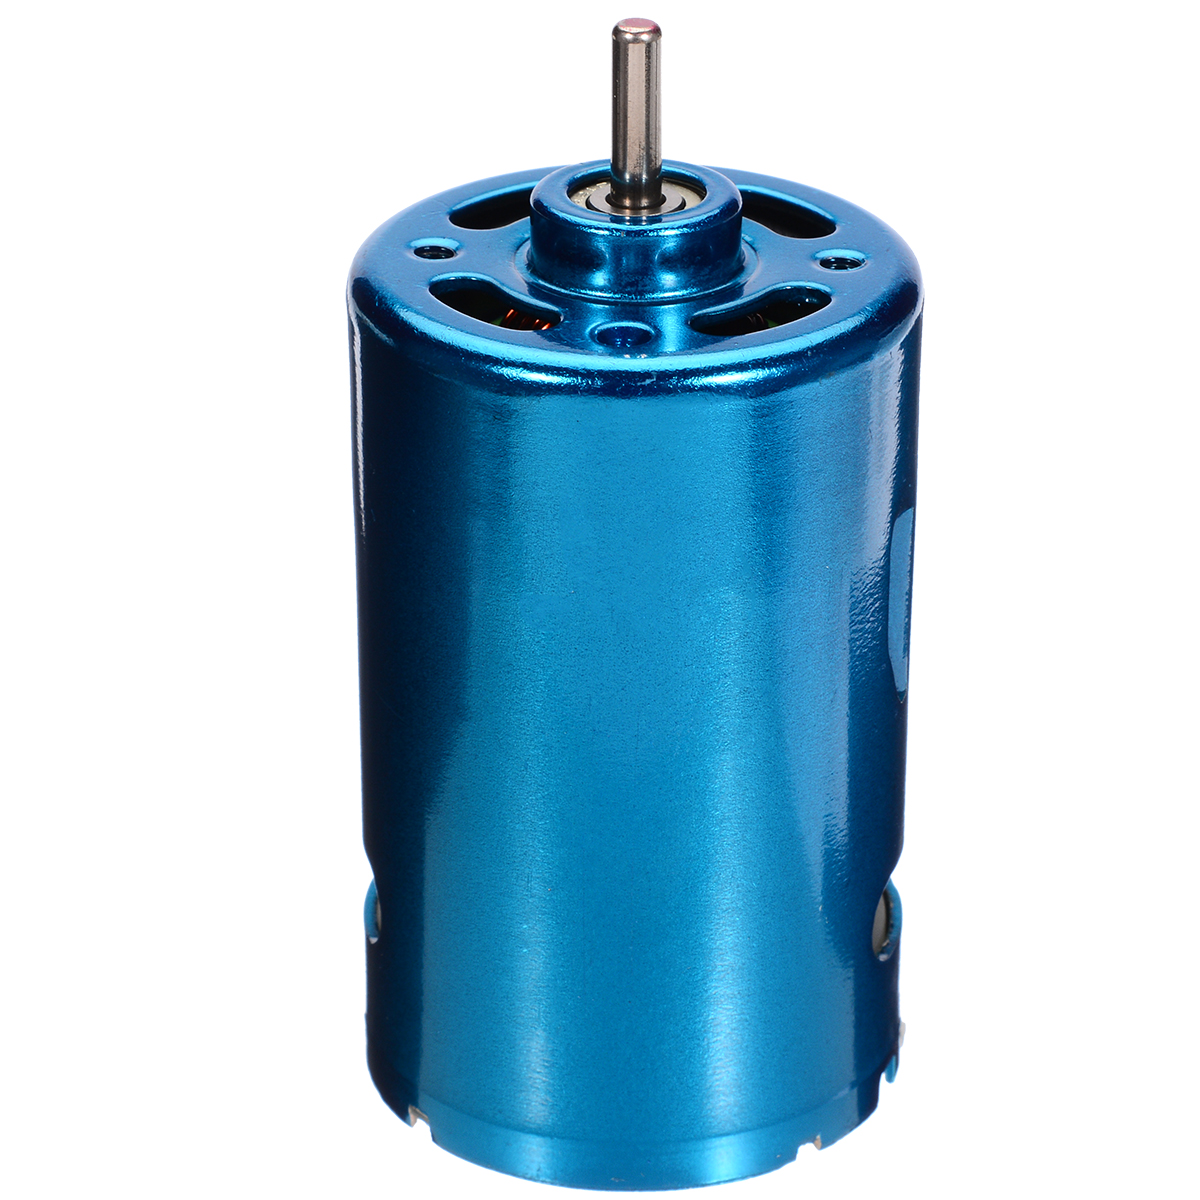 High Accuracy RS-550 Motor DC 12V 24V 30000 RPM High Speed Large Torque Low Noise with Wear Resistance For RC Car Boat Model image